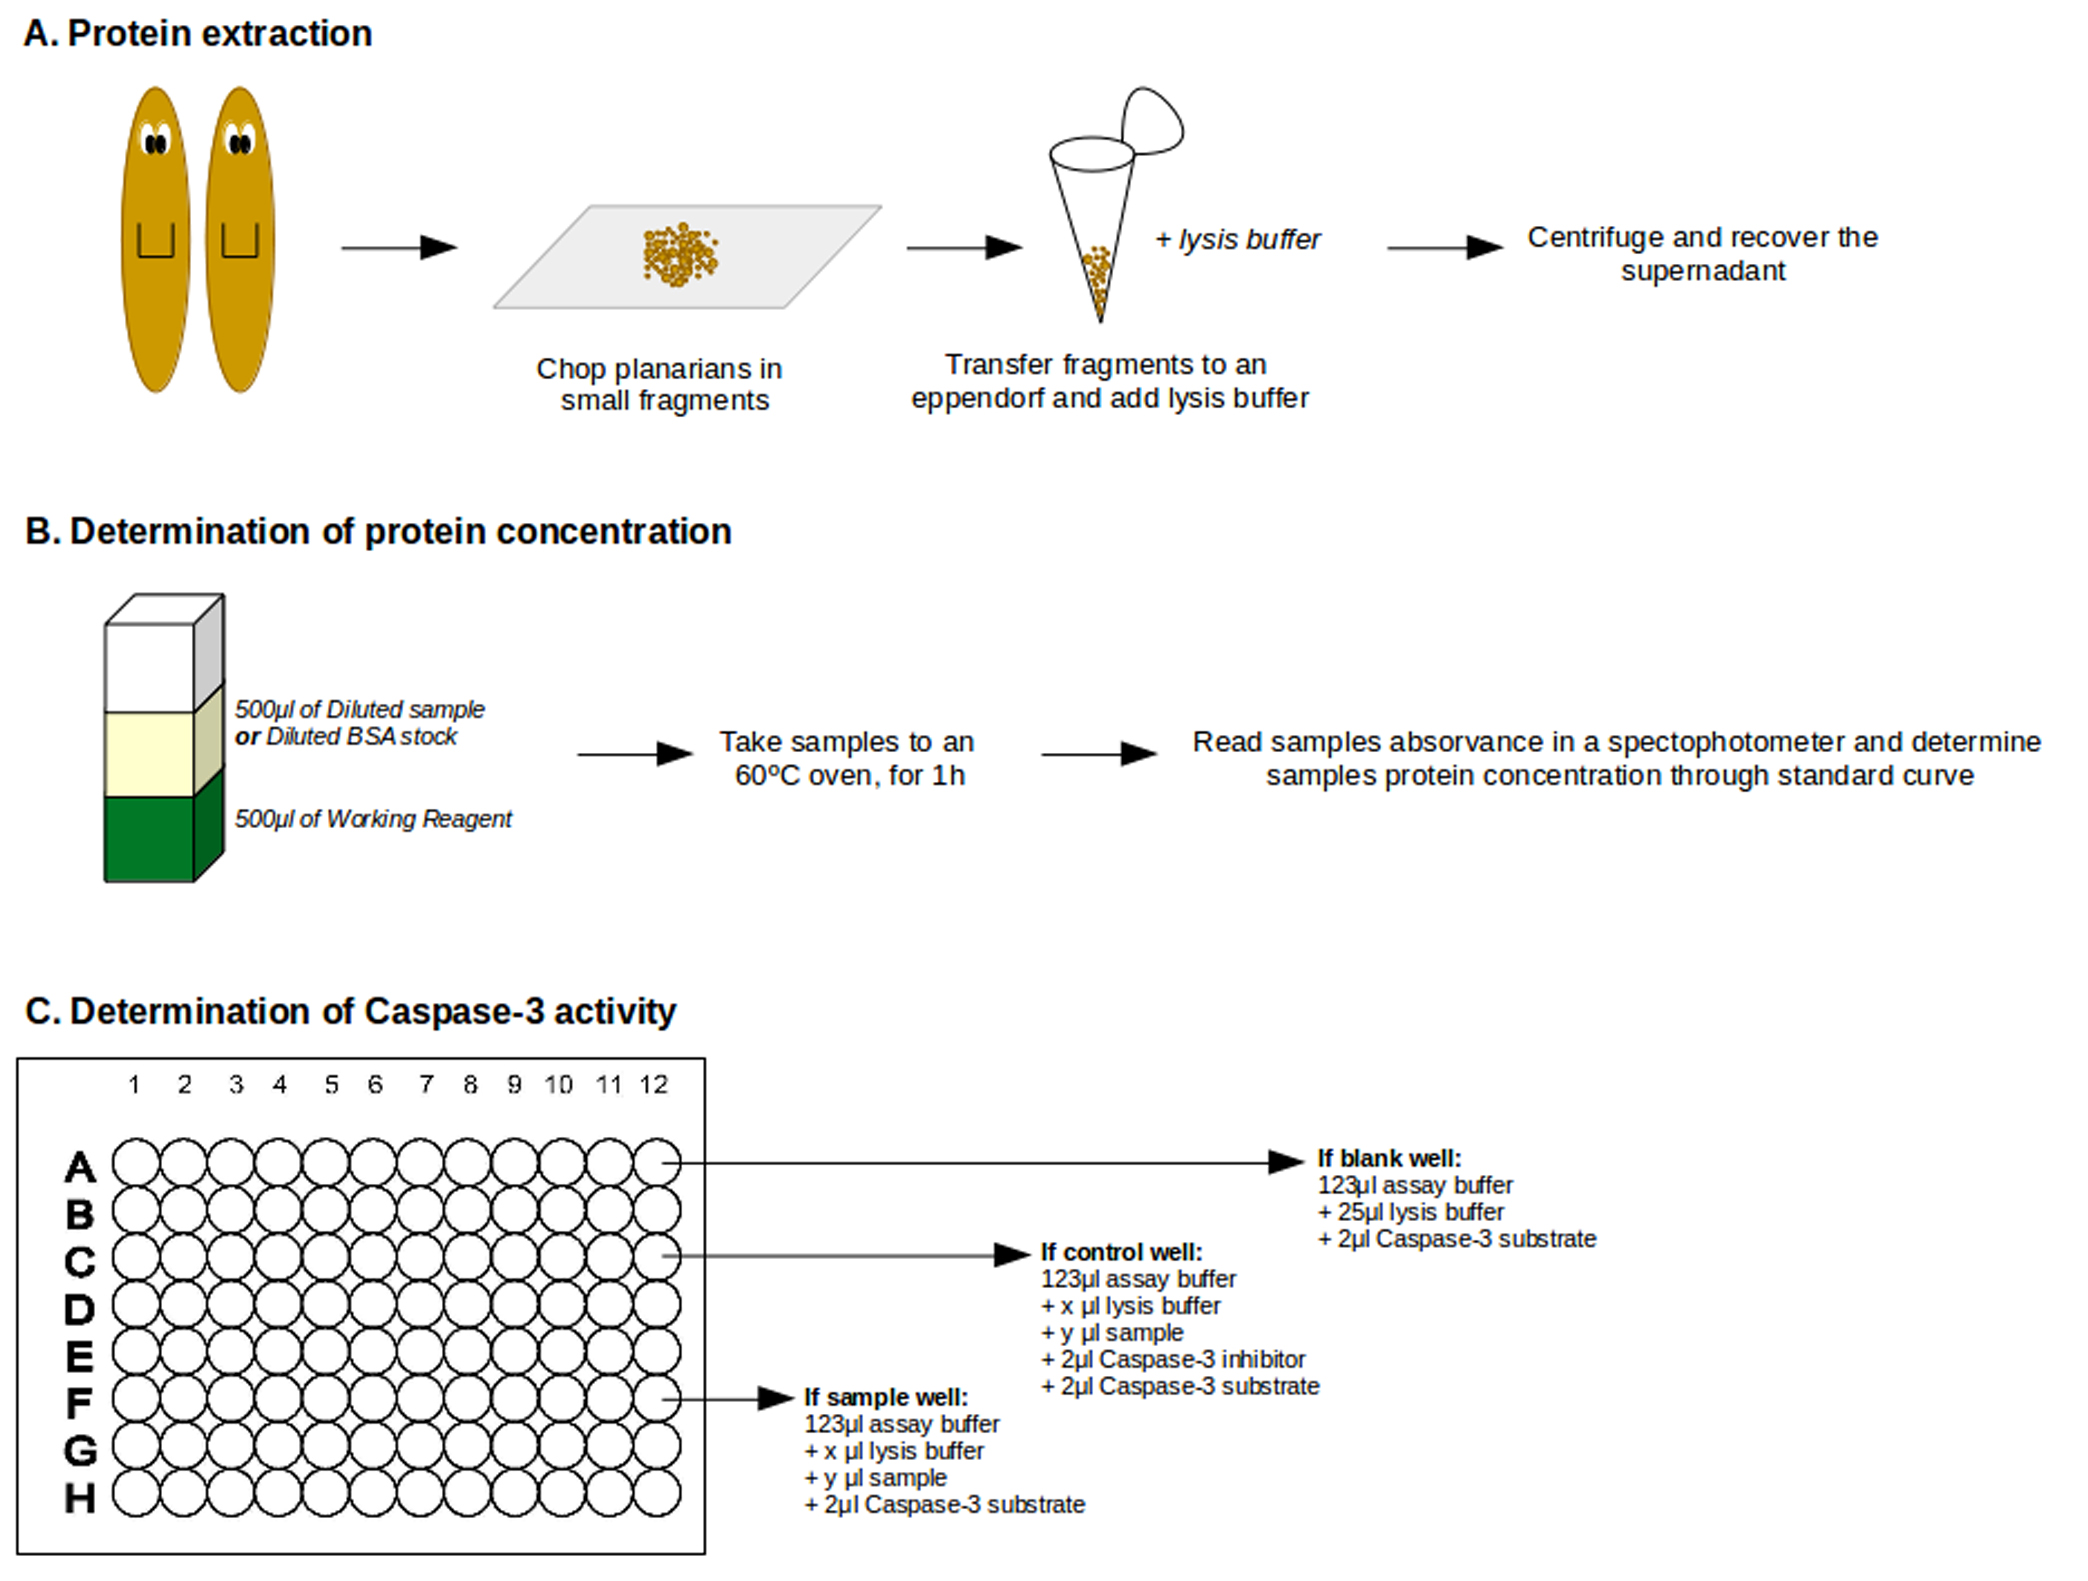 figure 2  general view of caspase-3 assay protocol  a  cartoon exemplifying  protein extraction  b  step-by-step of protein concentration determination